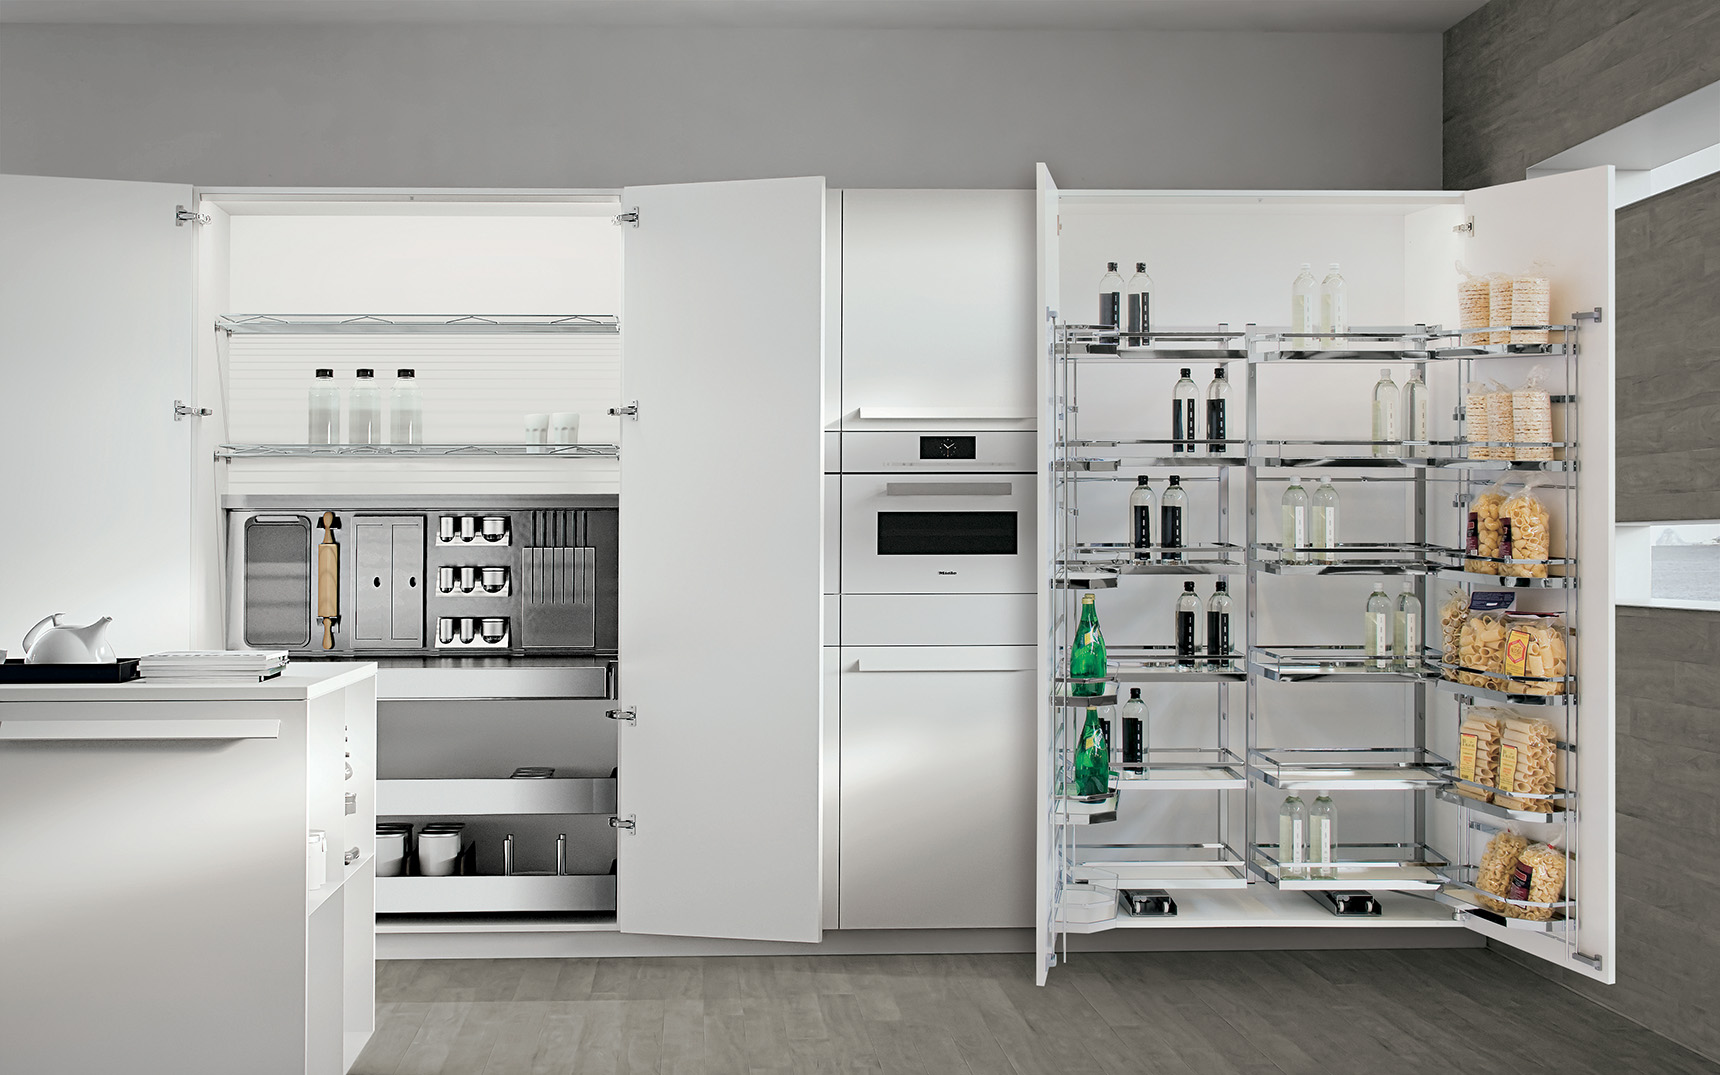 Accessori cucina e complementi farolfi casa for Outlet accessori cucina online